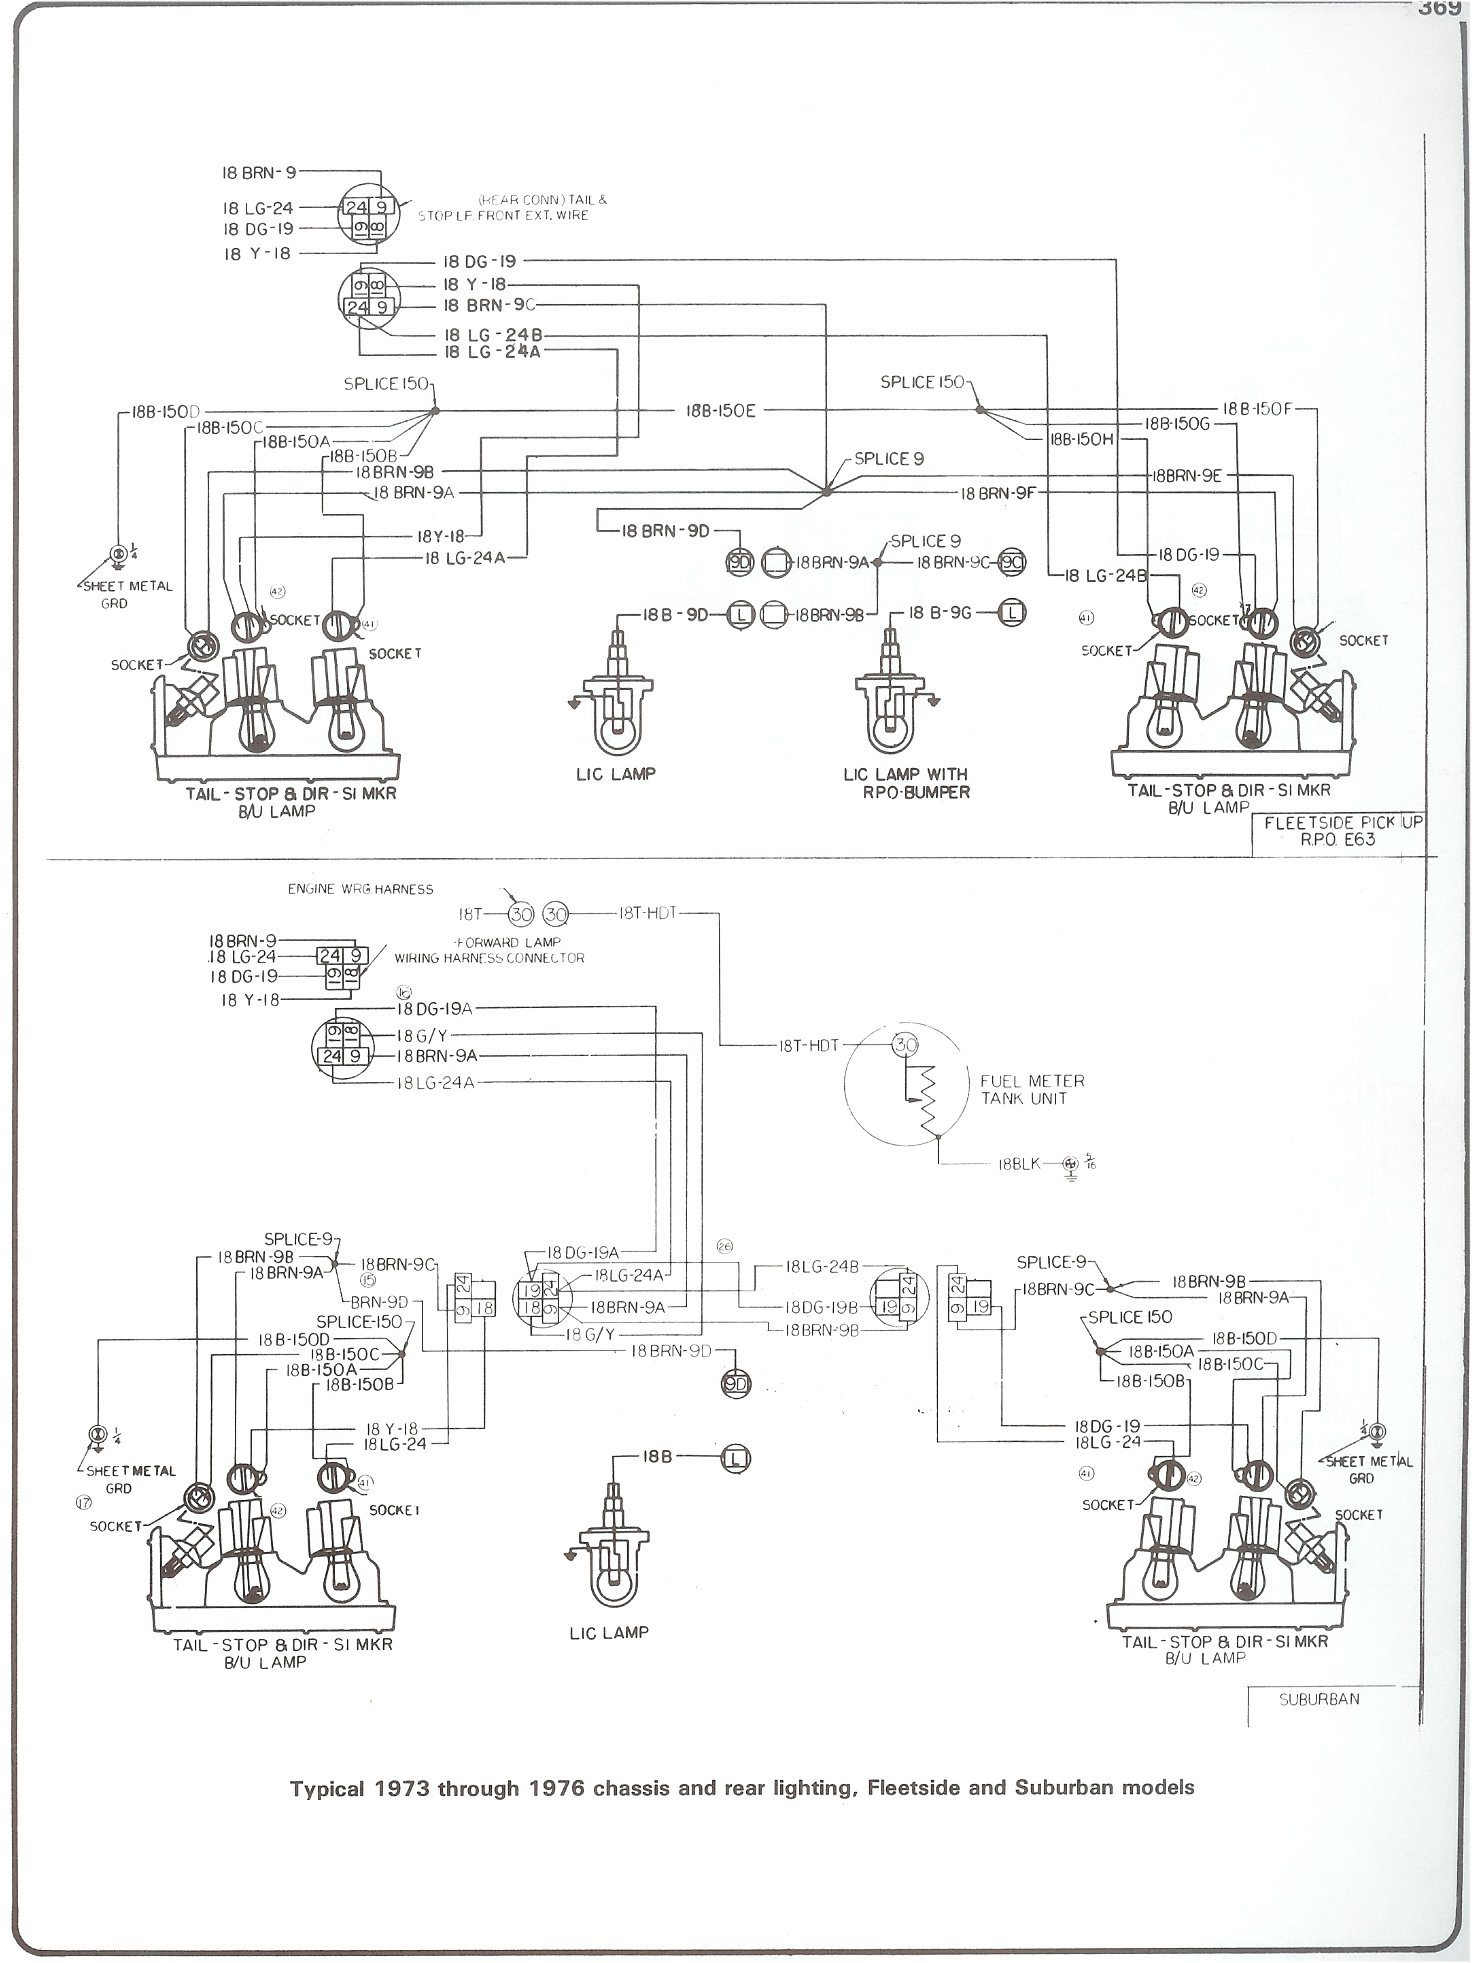 Chass Rr Light Fleet Burb on 84 Chevy Truck Wiring Diagram